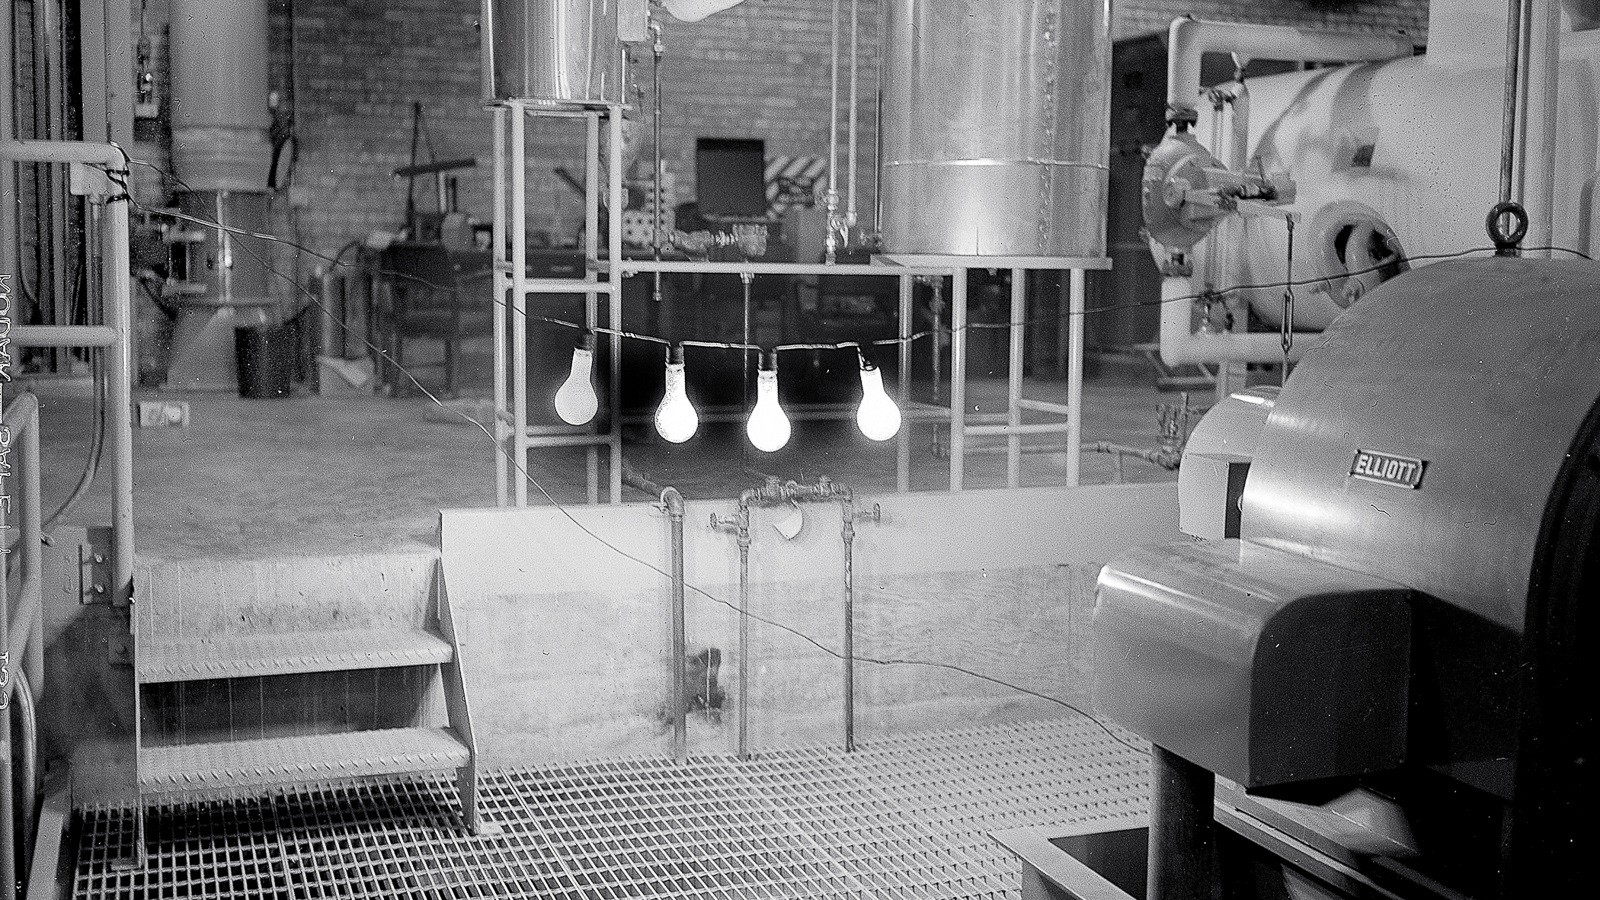 On December 20, 1951, the Experimental Breeder Reactor-I became the first power plant to make usable electricity through atomic fission, which powered four 200-watt light bulbs. (Image by Argonne National Laboratory.)